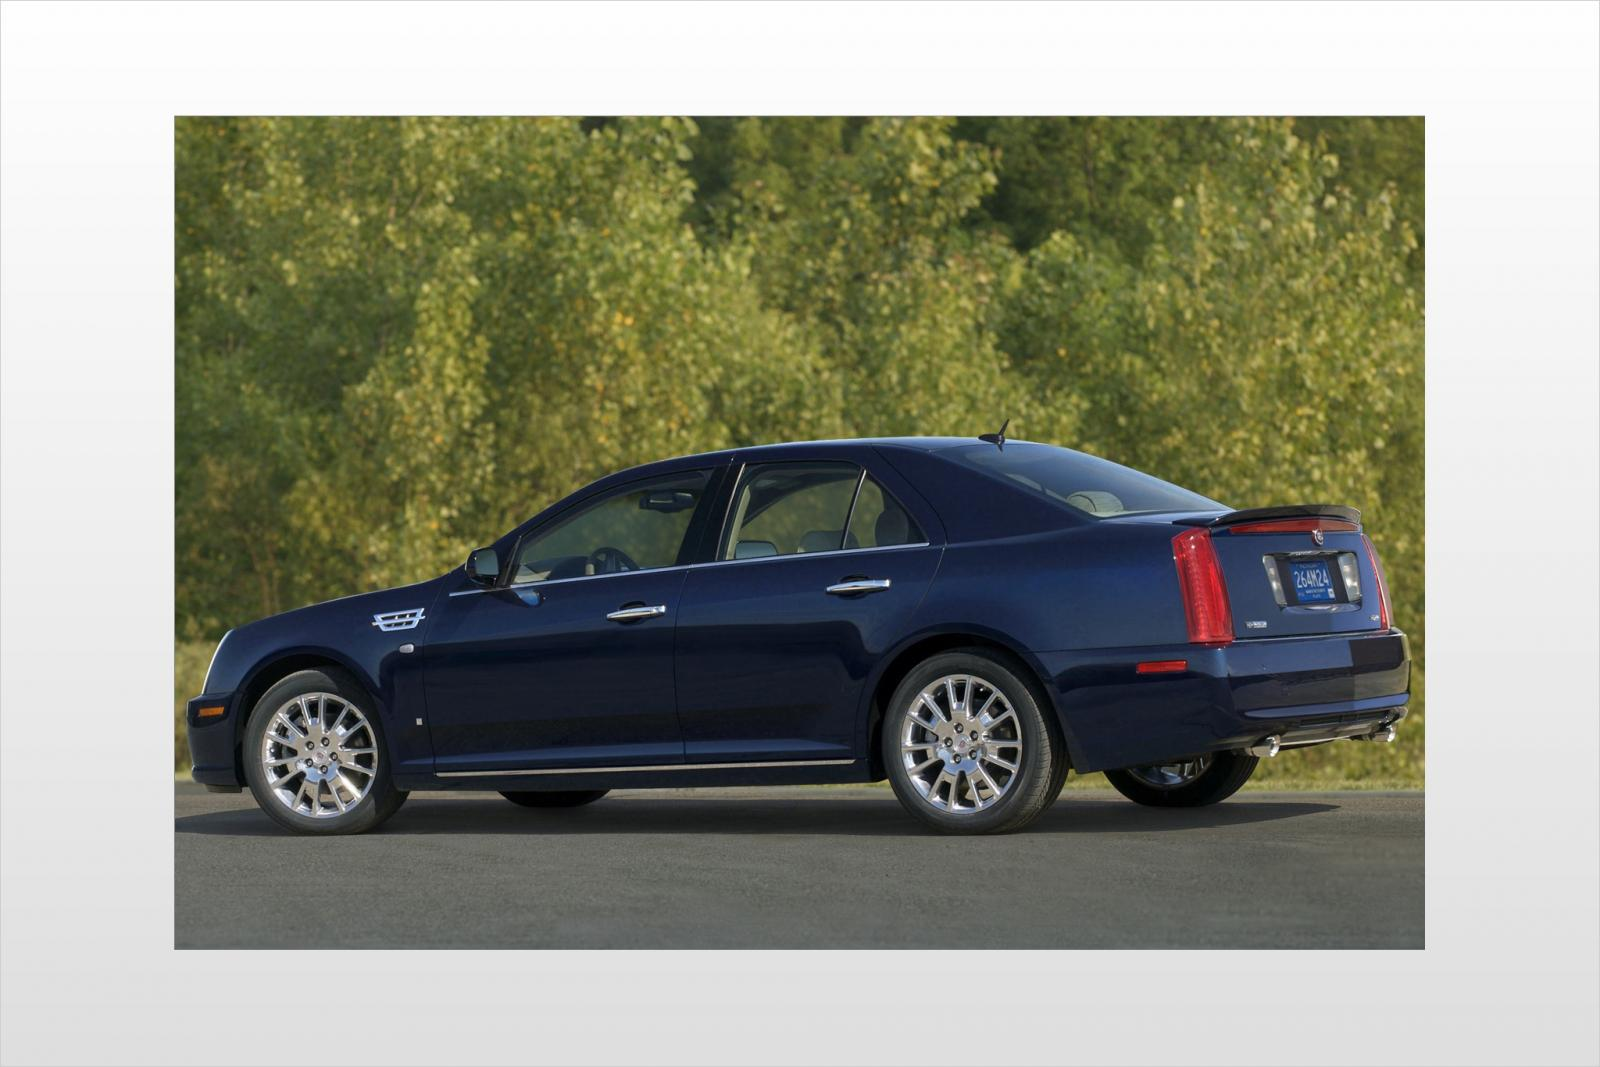 2008 cadillac sts information and photos zombiedrive. Black Bedroom Furniture Sets. Home Design Ideas